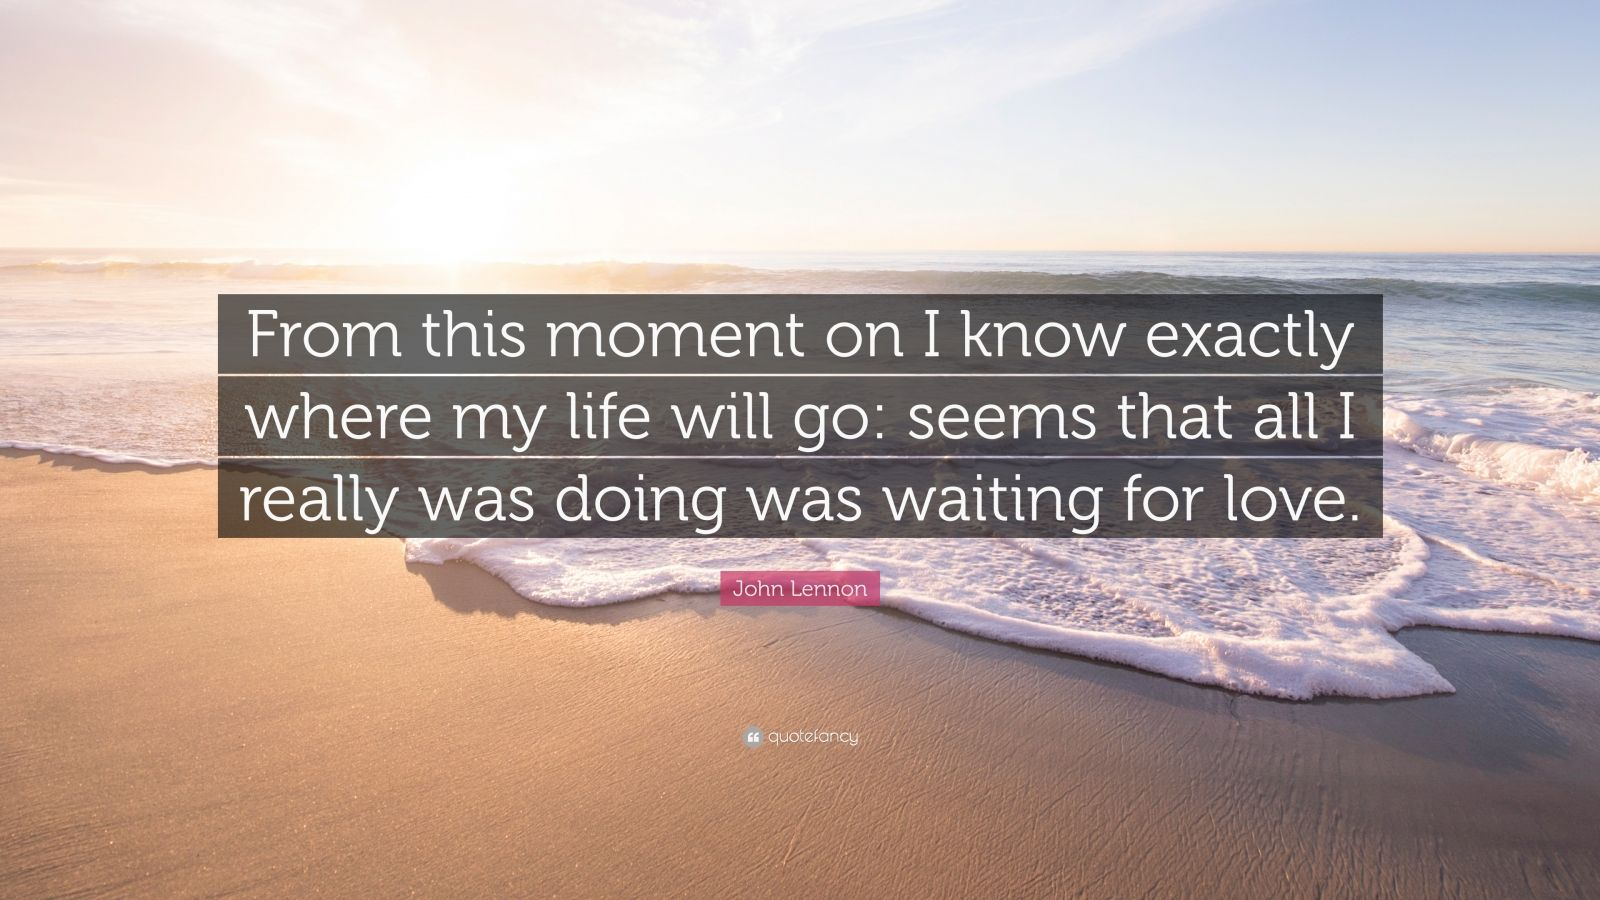 """John Lennon Quote: """"From this moment on I know exactly where my life will go: seems that all I really was doing was waiting for love."""""""